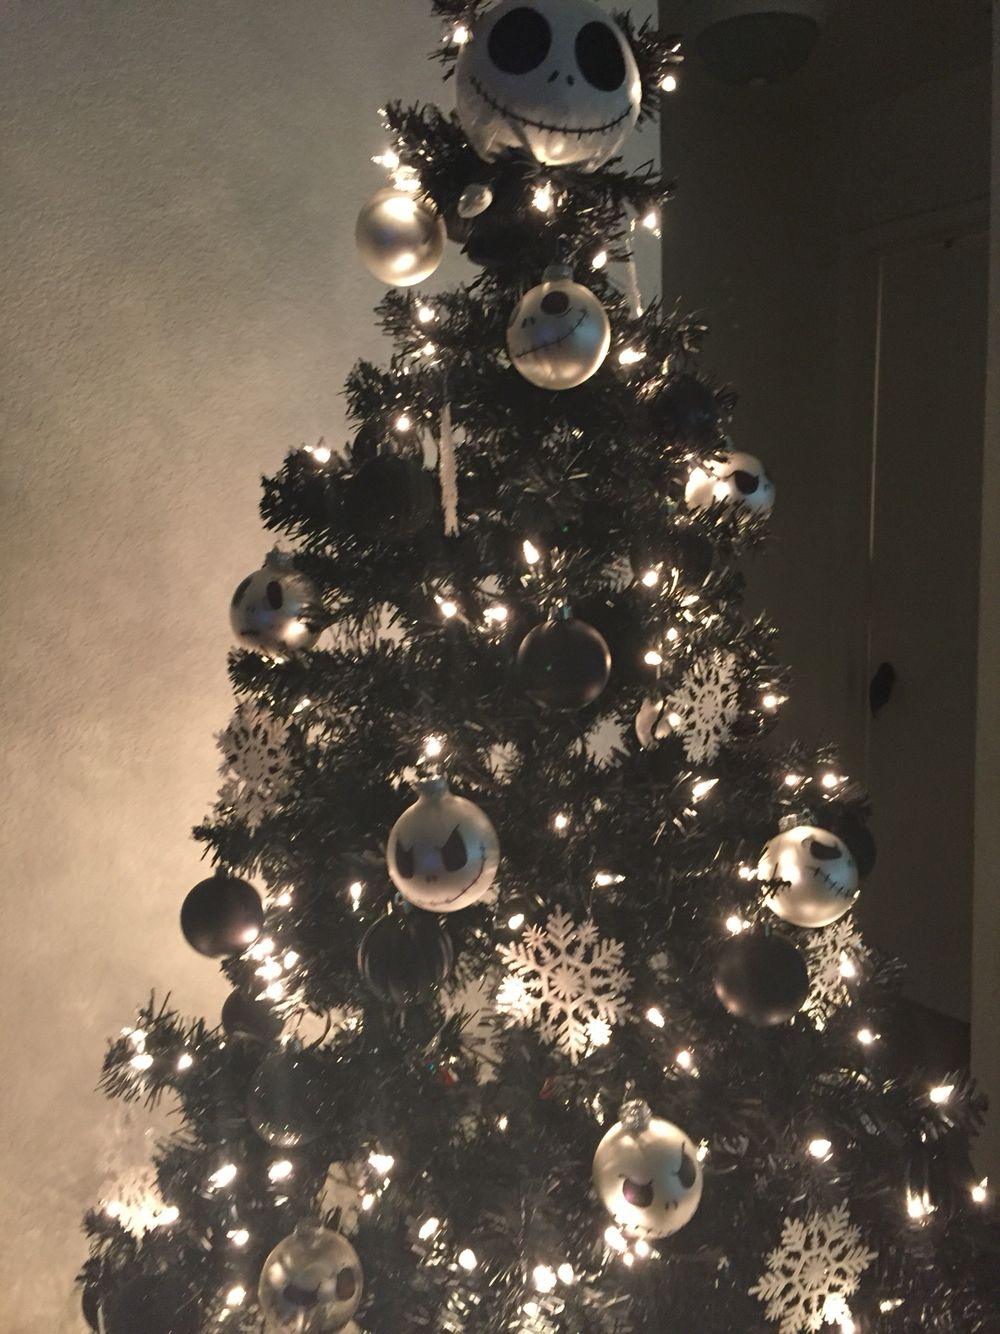 The nightmare before Christmas Tree | Tattoo in 2018 | Pinterest ...